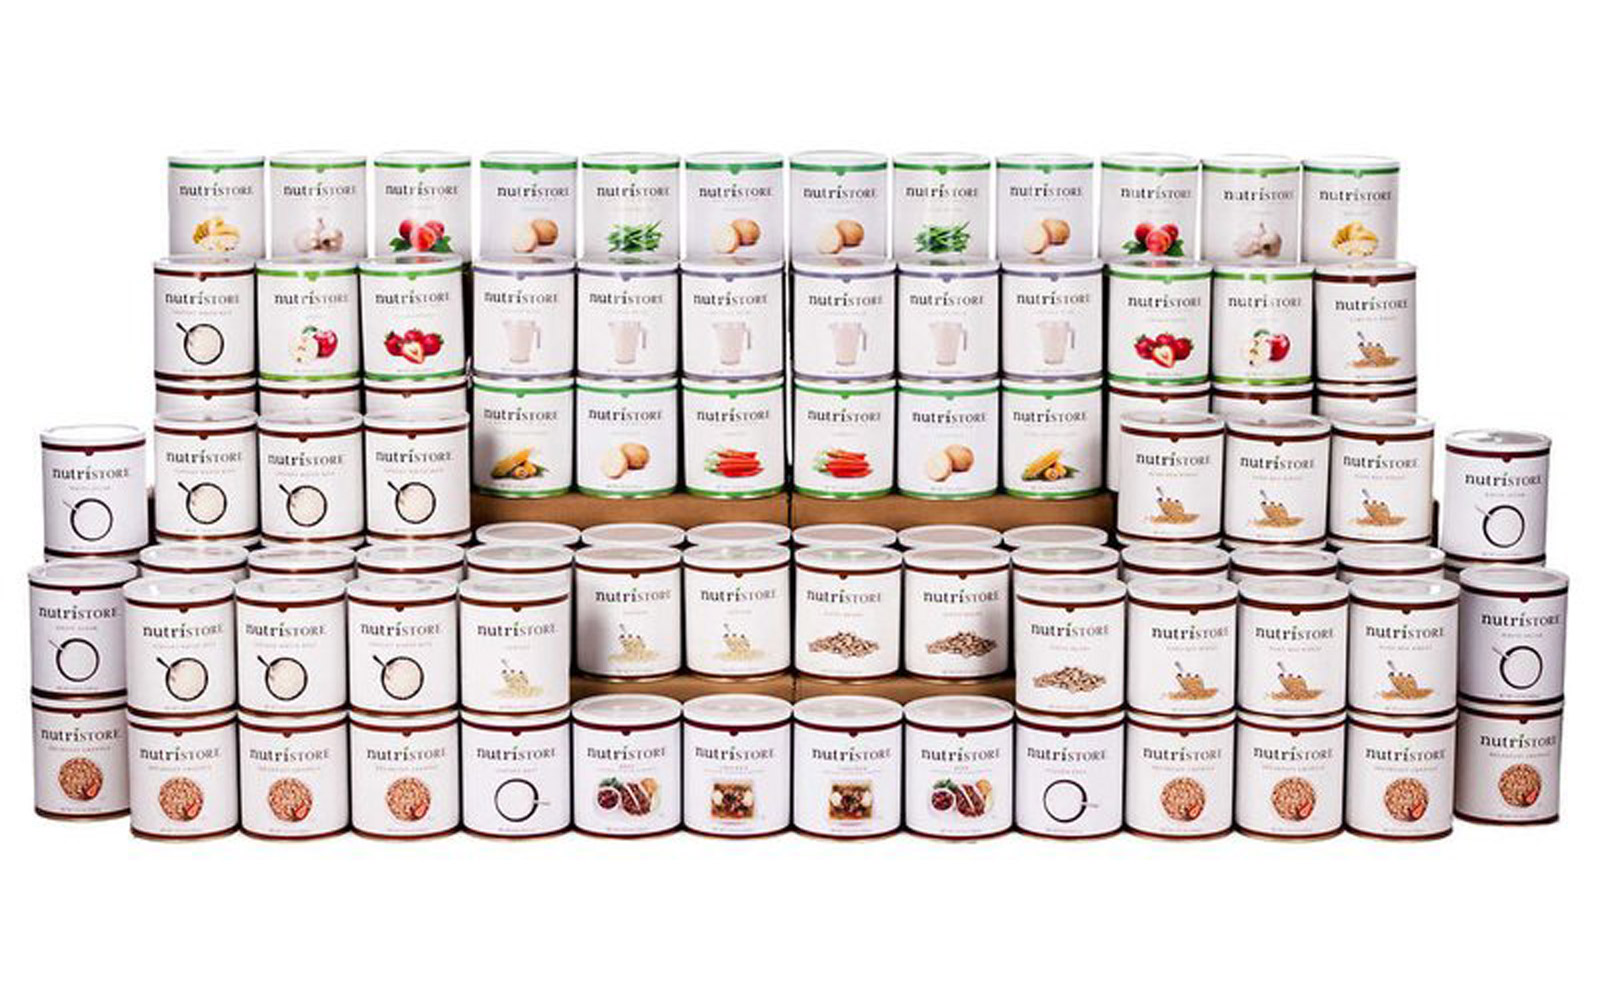 Costco Sells a $1,000 'Emergency Food Kit' That Can Keep a Family Fed for a Year